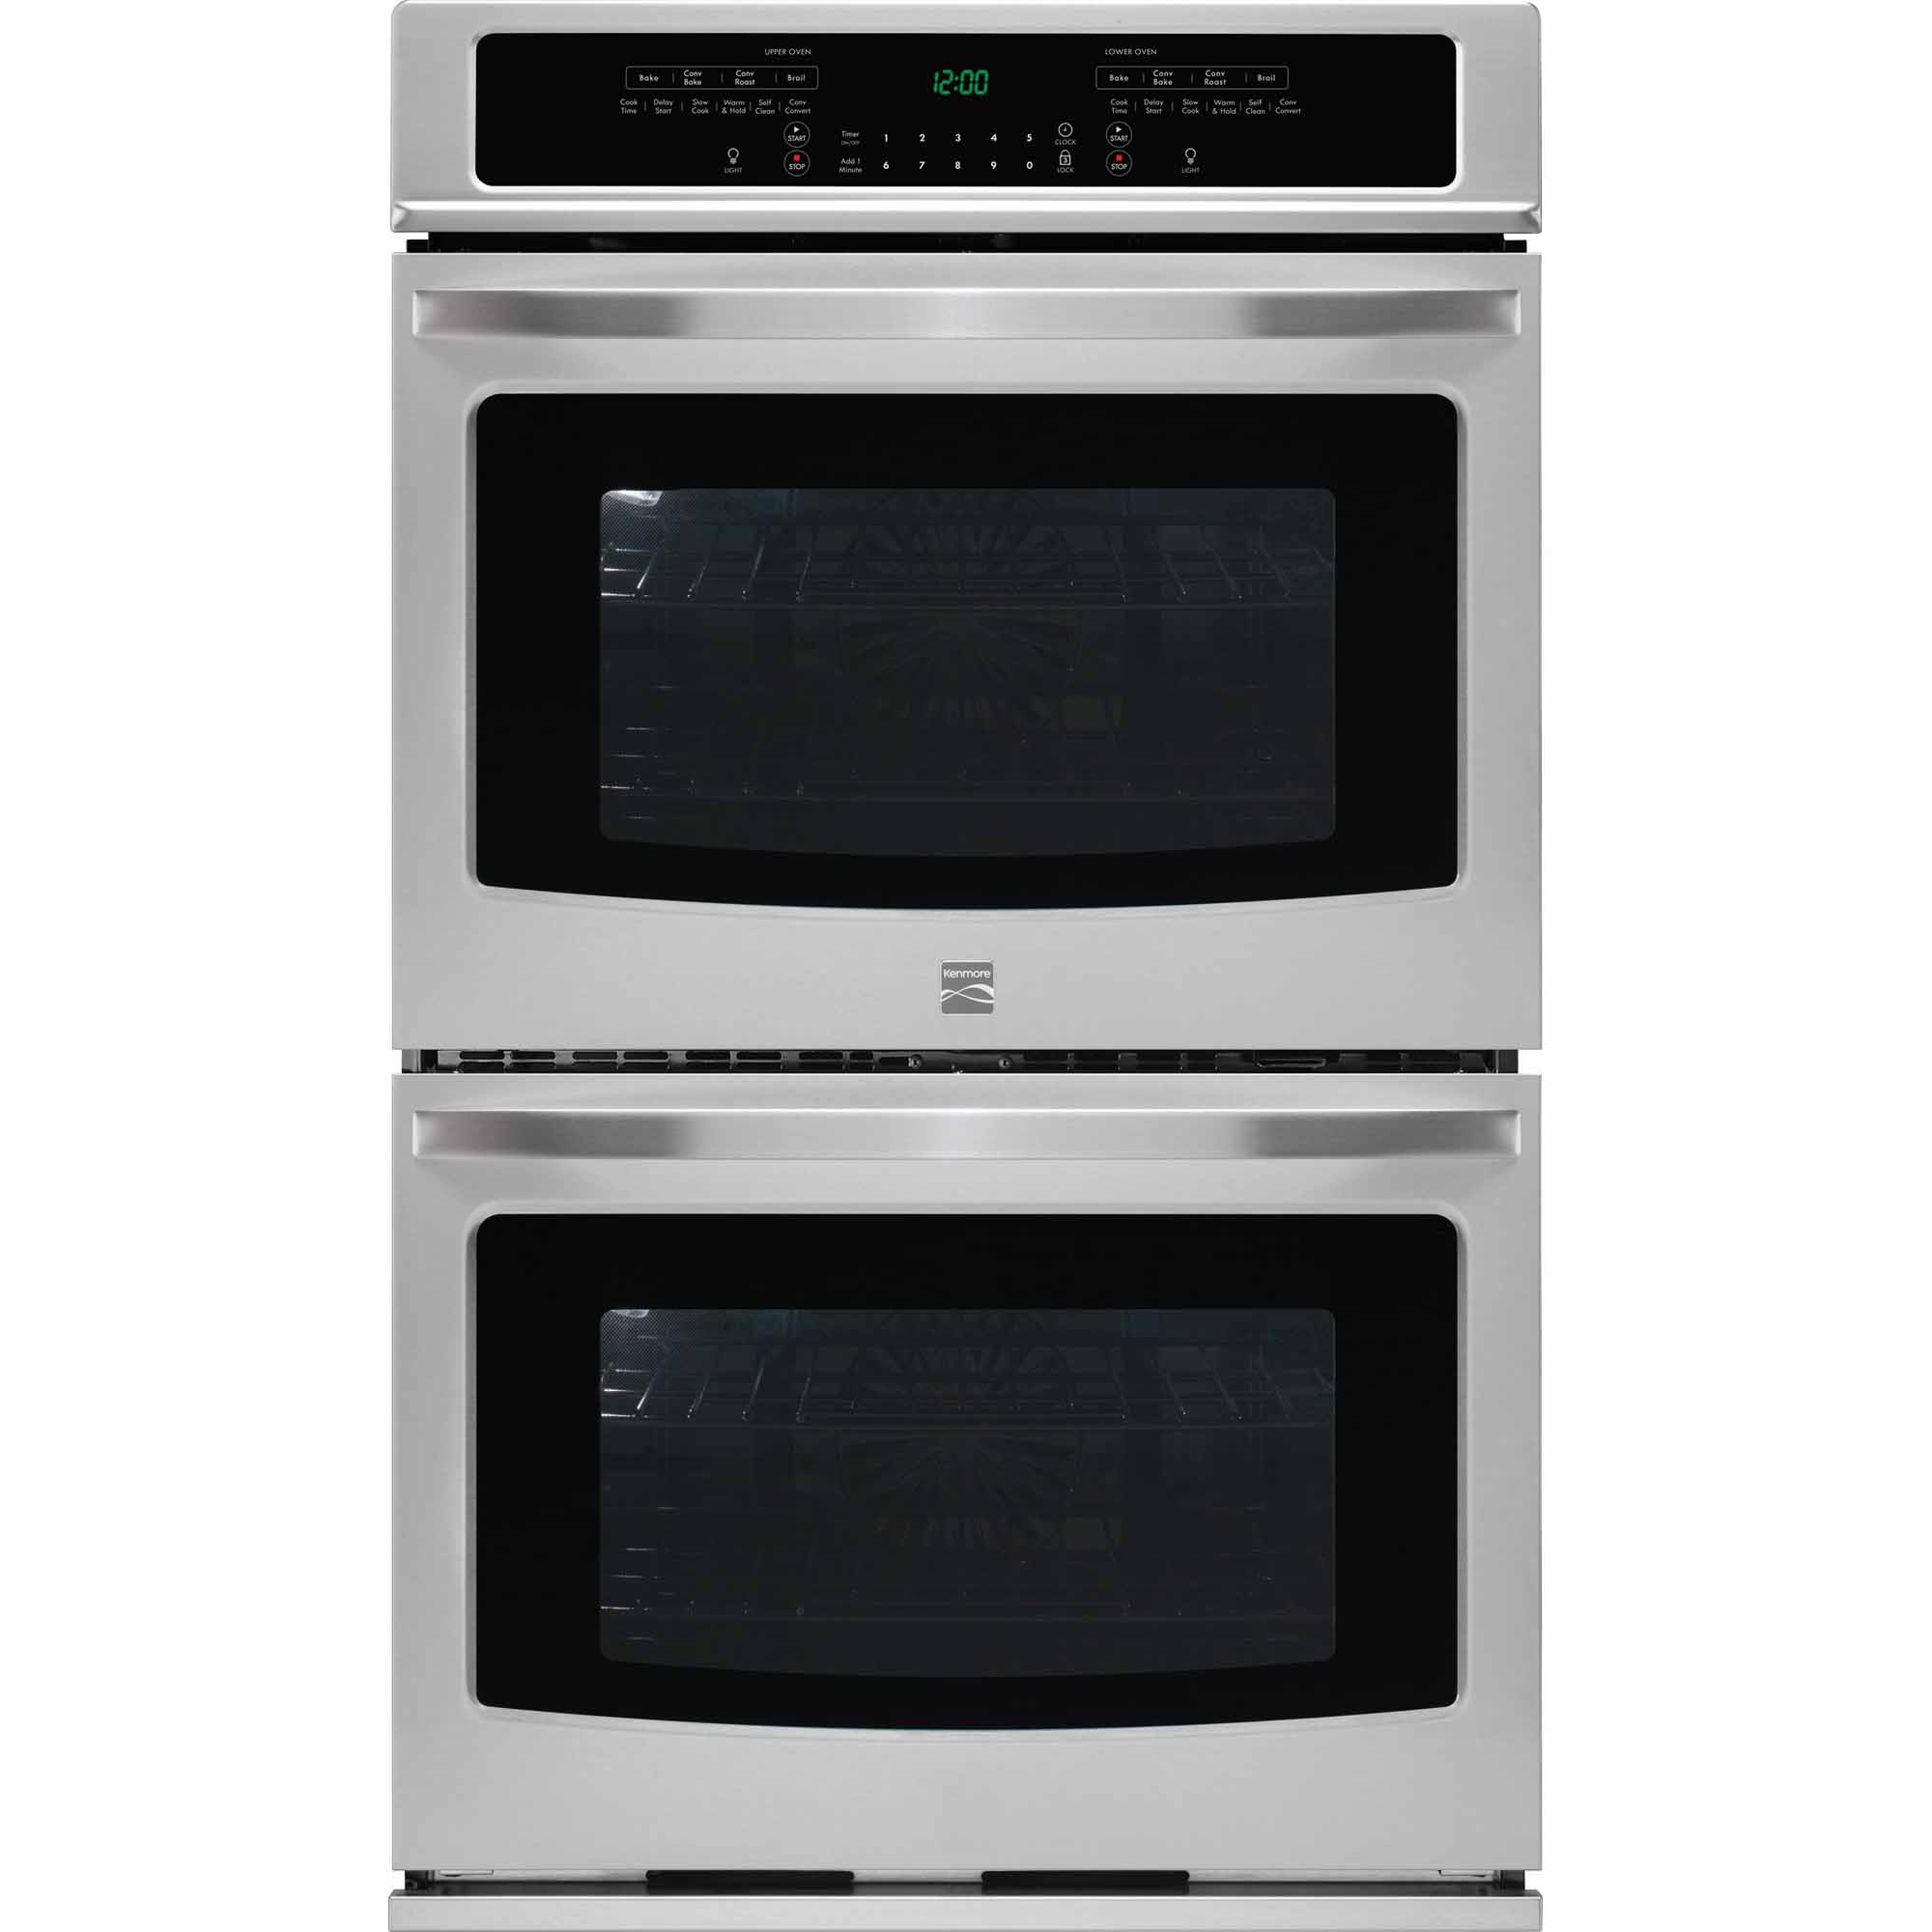 Kenmore 49533 30 Self-Clean Double Electric Wall Oven w/ Convection - Stainless Steel